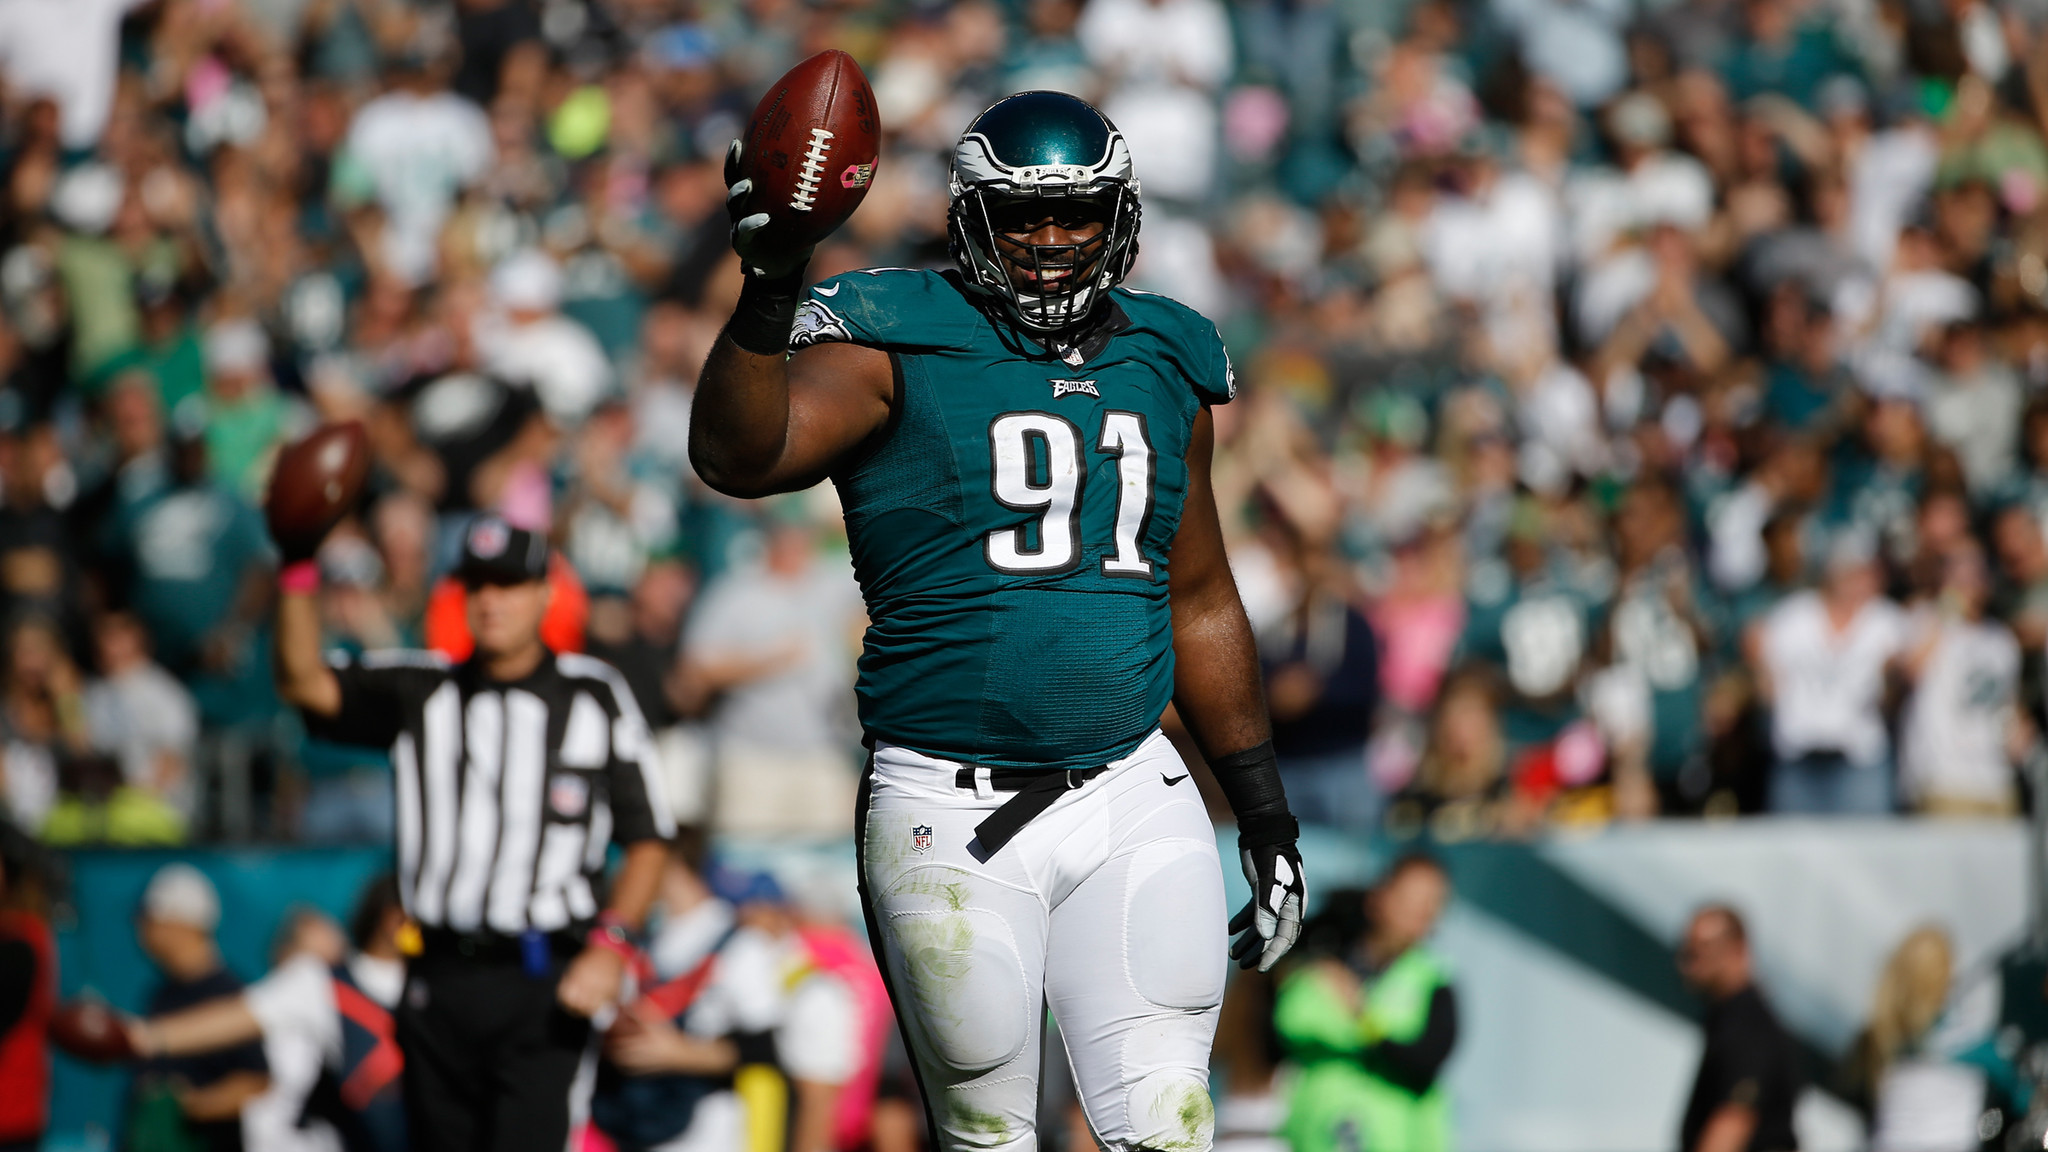 Eagles Fletcher Cox is NFC defensive player of the week The